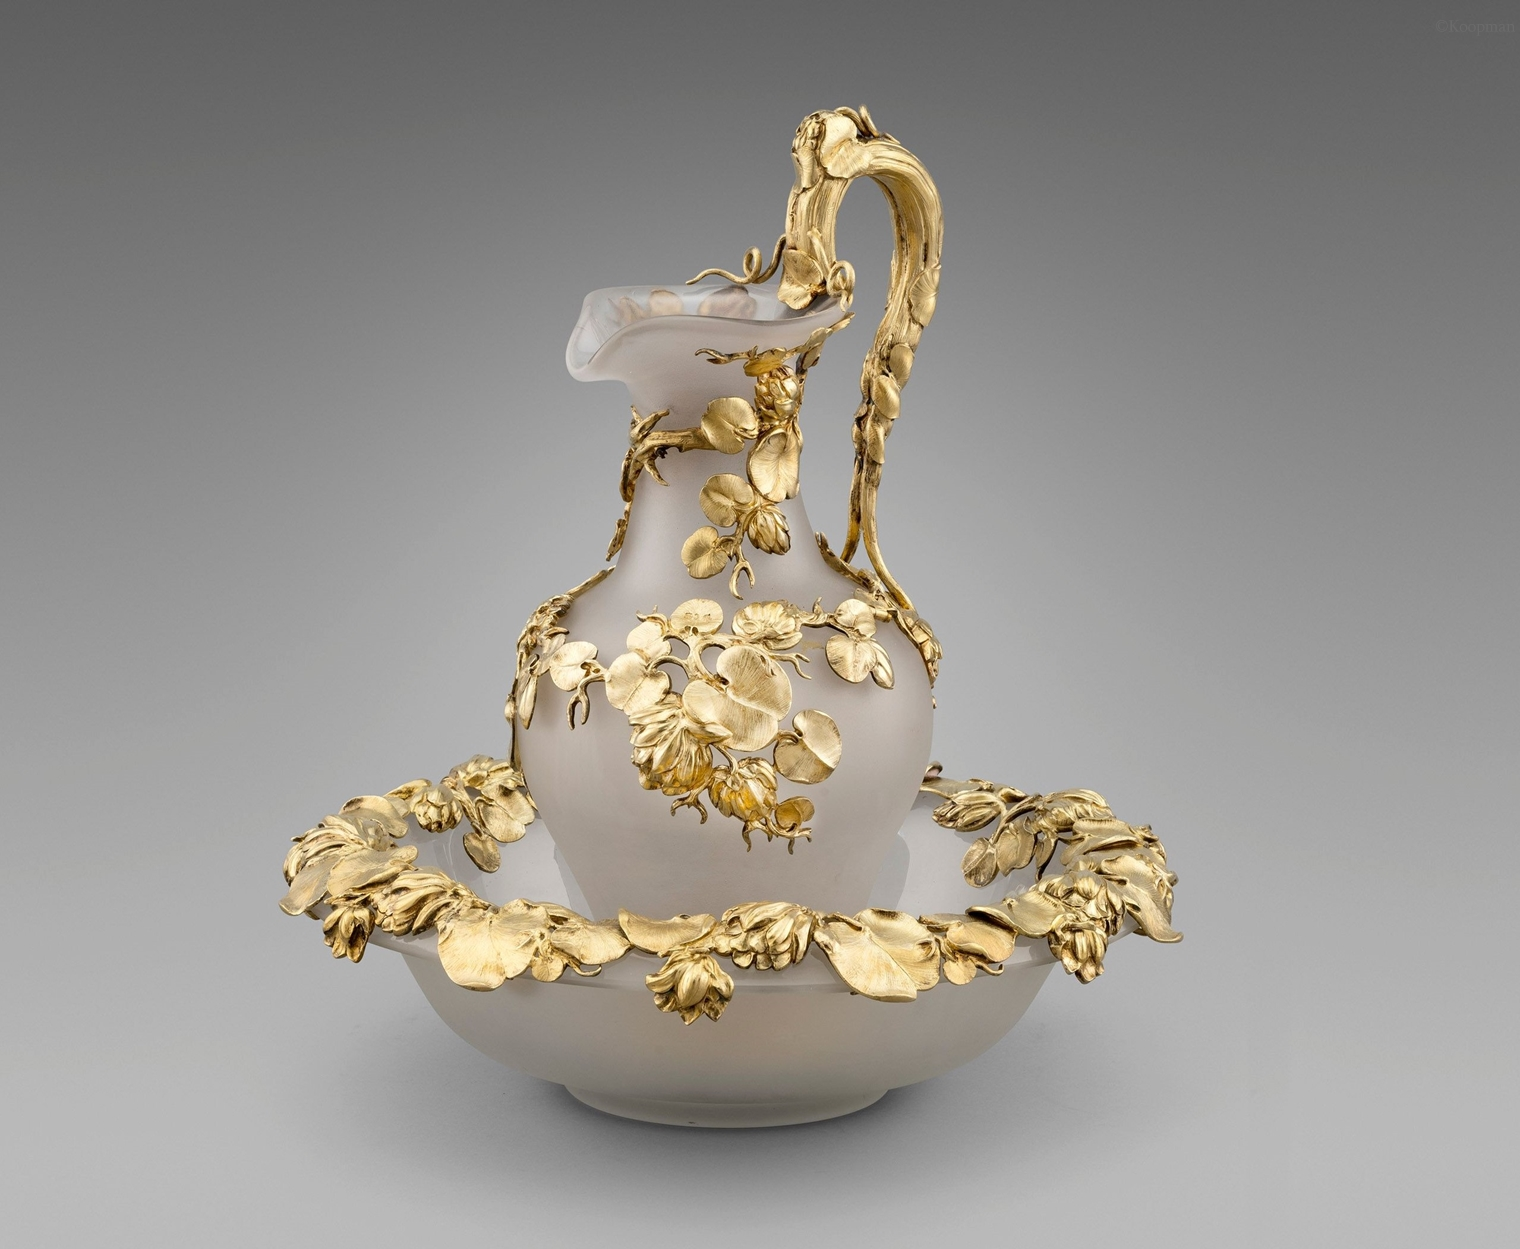 A Silver-Gilt Mounted Ewer and Basin